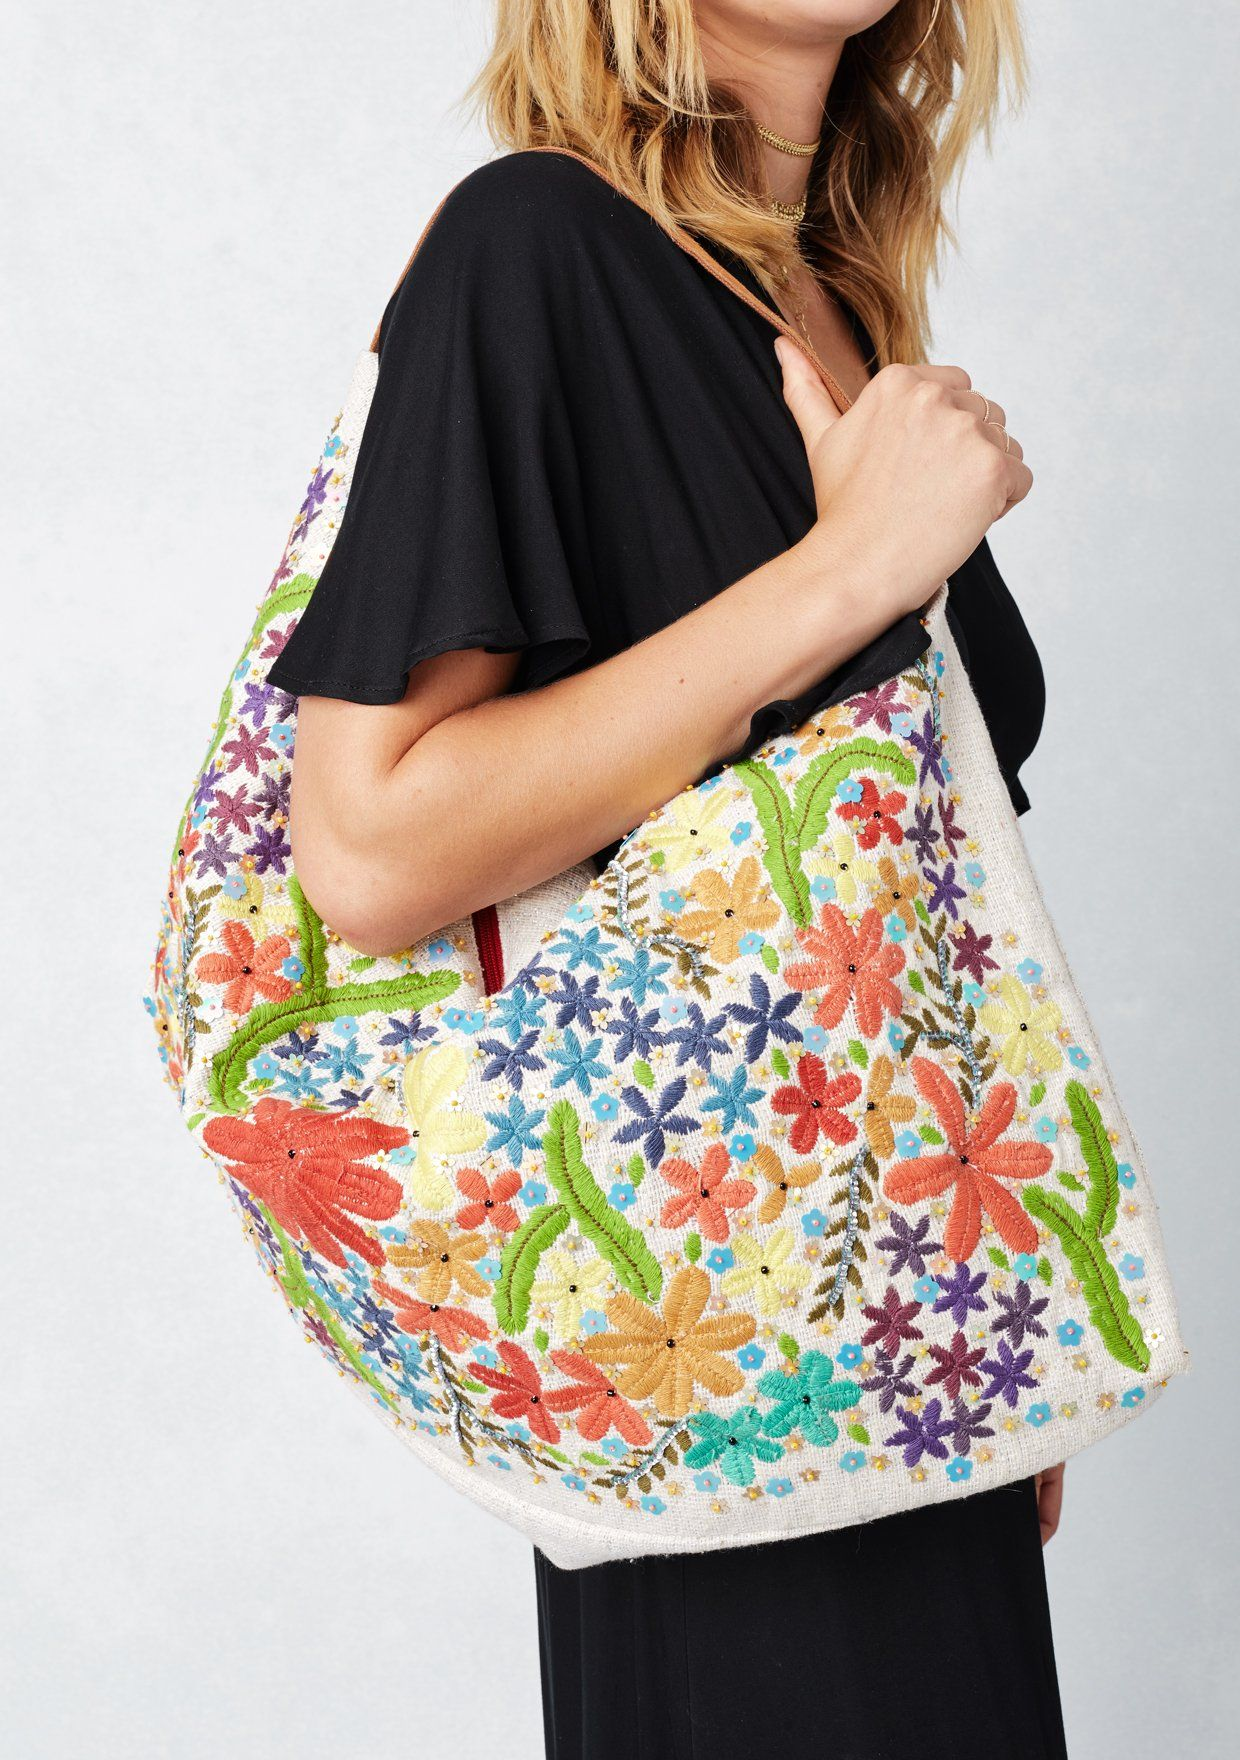 [Color: Multi/Natural] Lovestitch Intricately beaded, floral embroidered, oblong hobo bag, with suede handle and zippered closure.